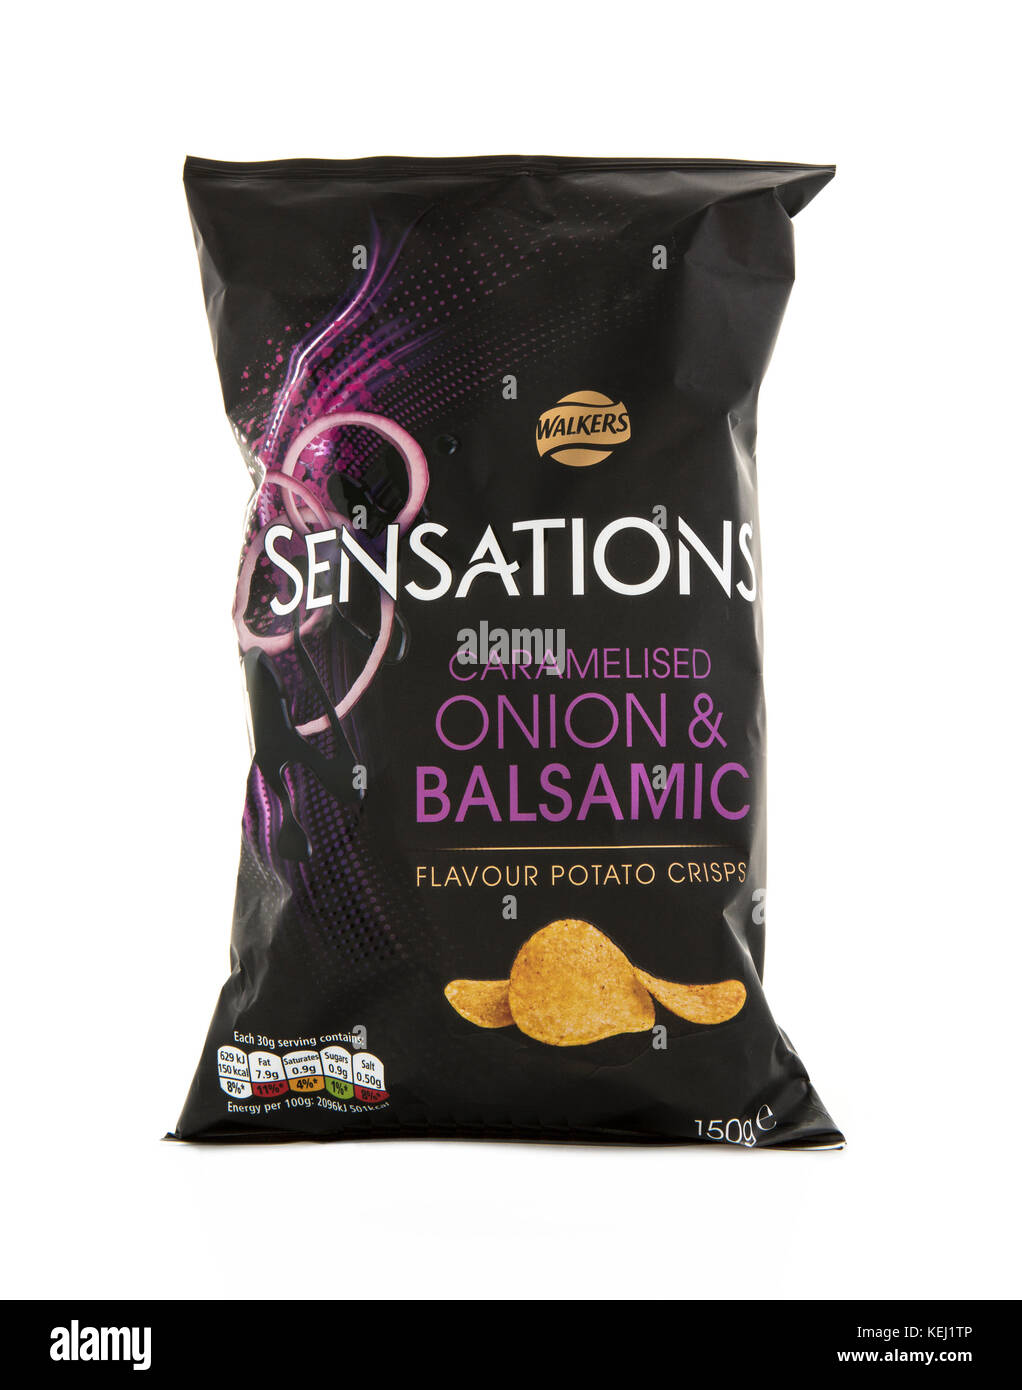 SWINDON, UK - OCTOBER 21, 2017: Bag of Walkers Sensations Caramelised Onion and Balsamic crisps isolated on a white - Stock Image